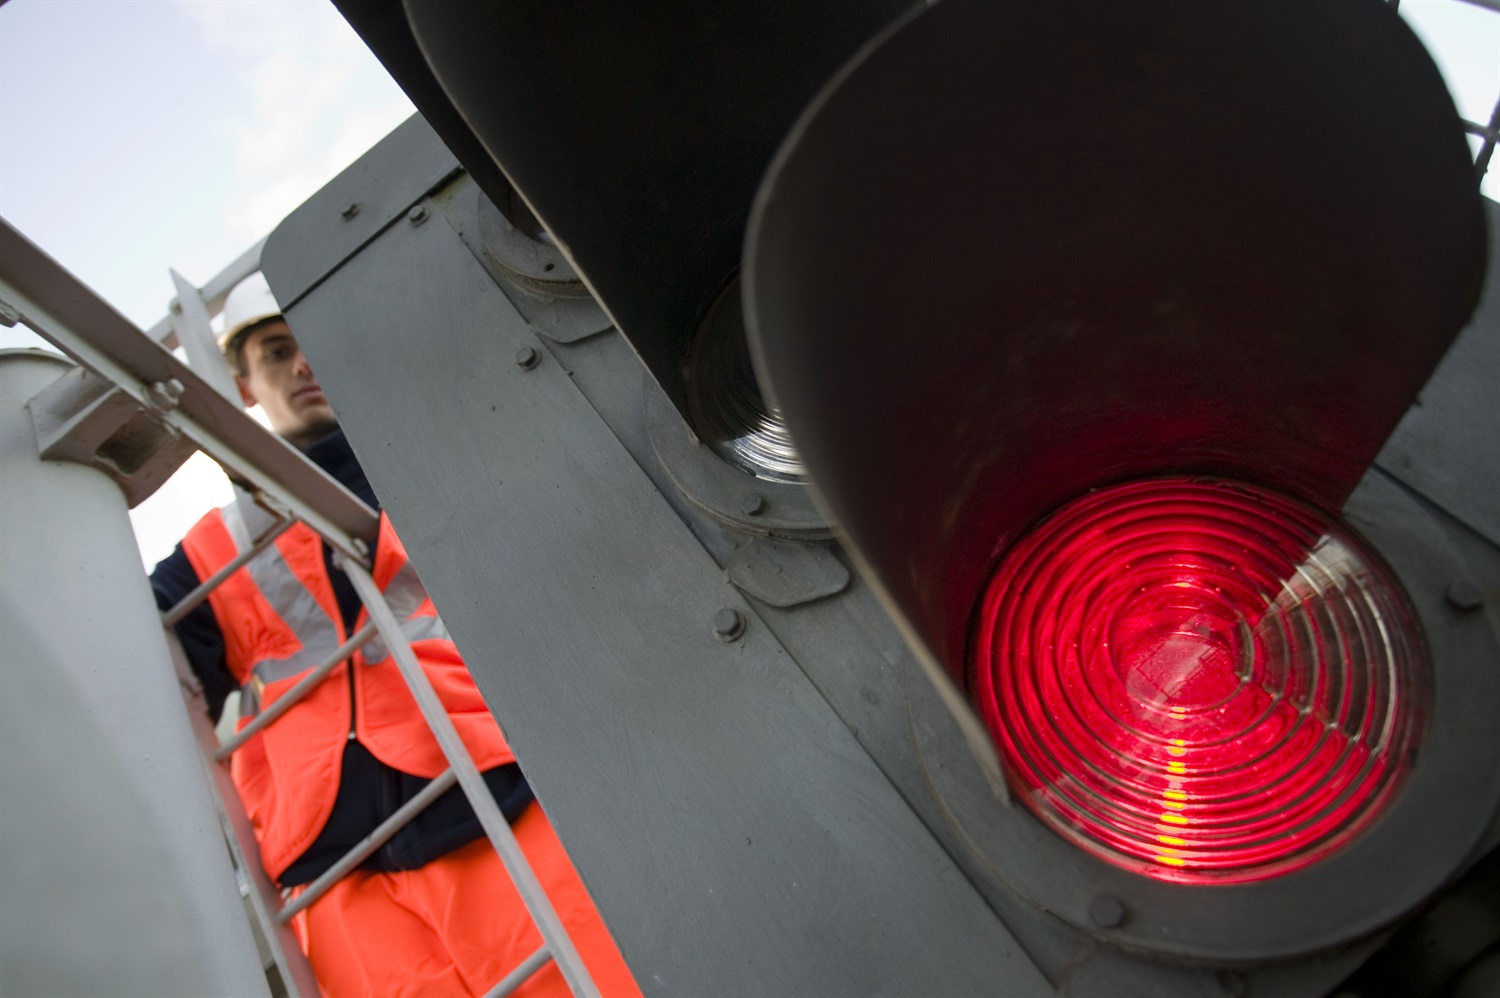 State-of-the-art signal work set to start in West Yorkshire